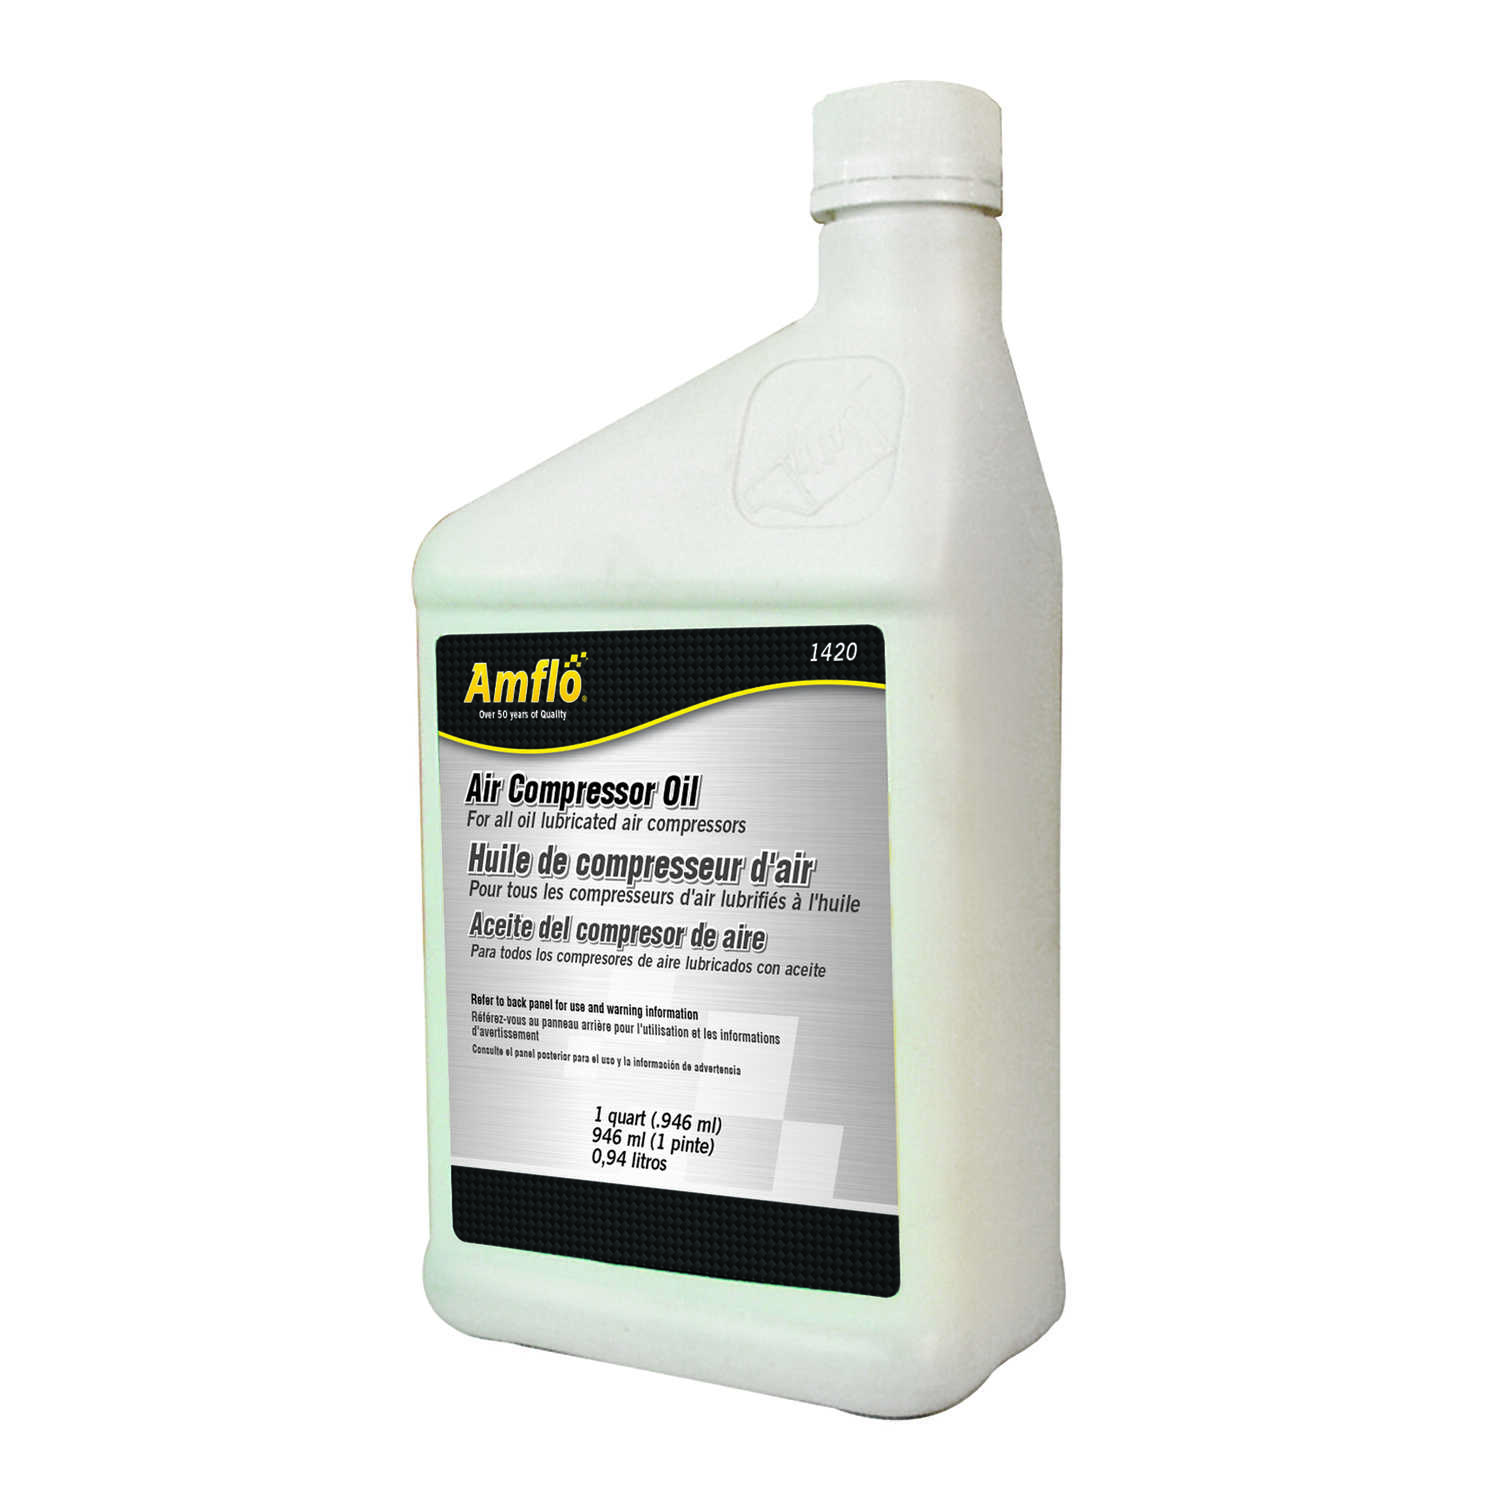 Amflo  Air Compressor Lubricating Oil  Bottle  1 pc.